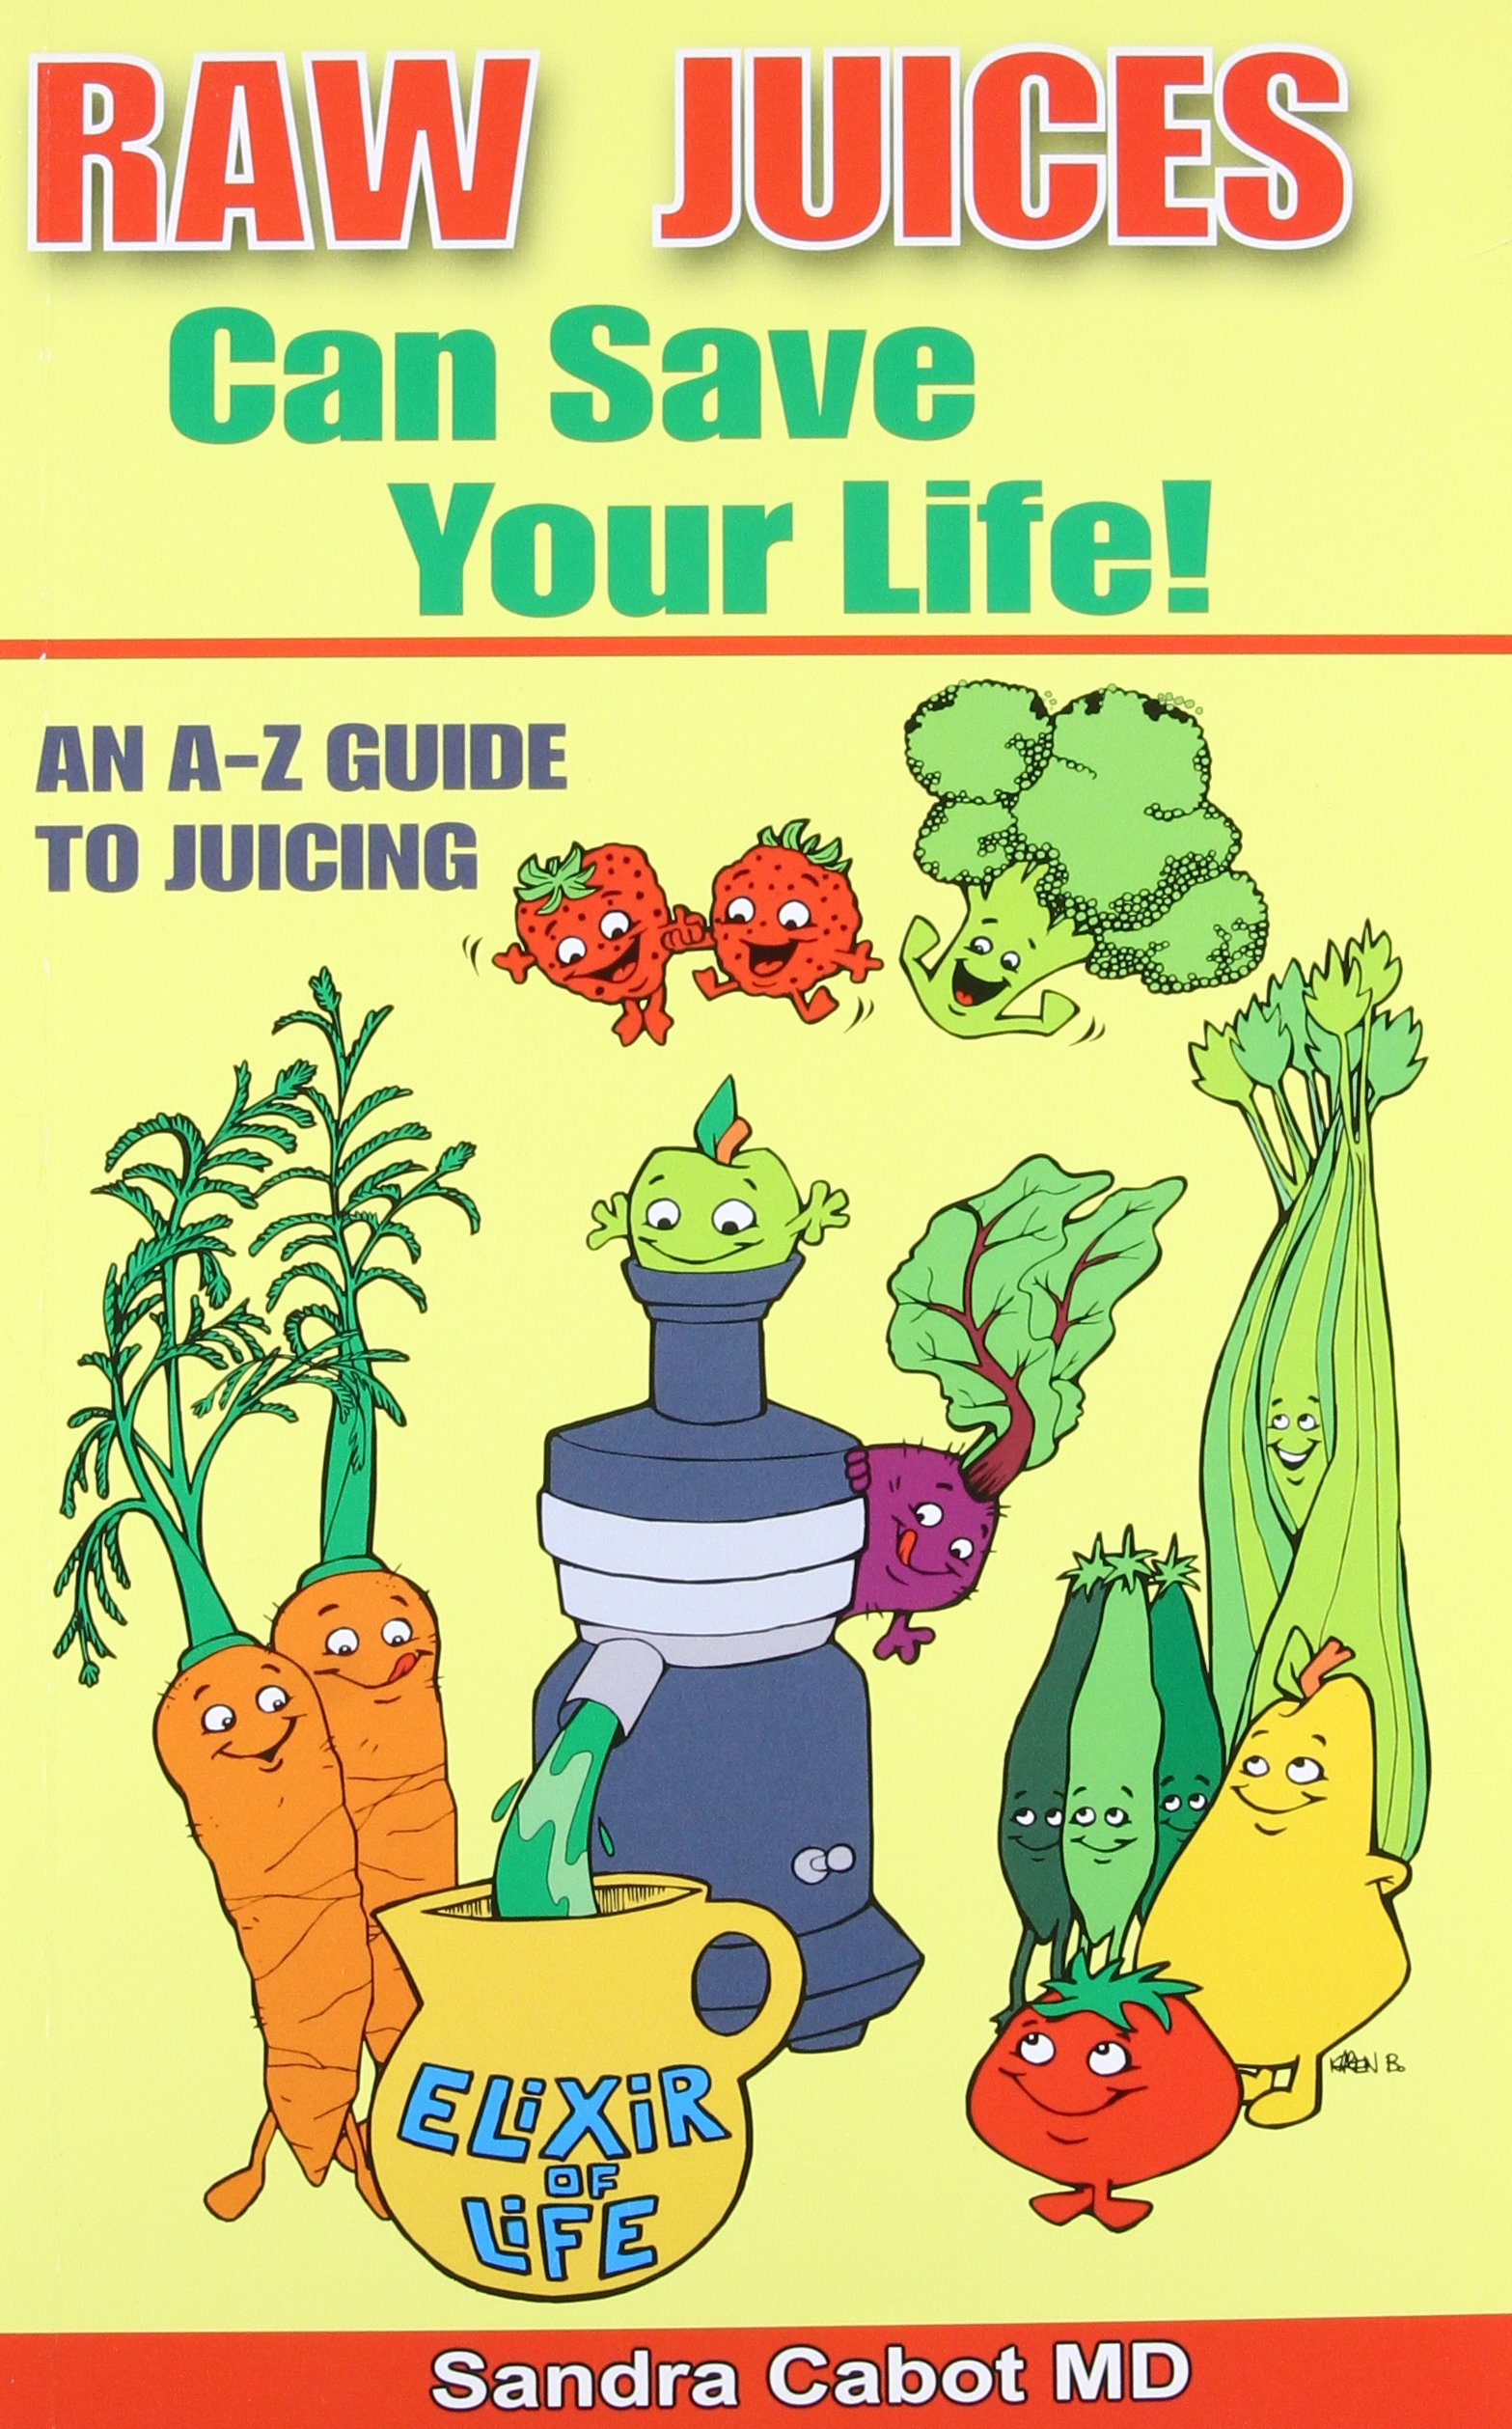 Raw Juices Can Save Your Life: An A-Z Guide to Juicing. pdf